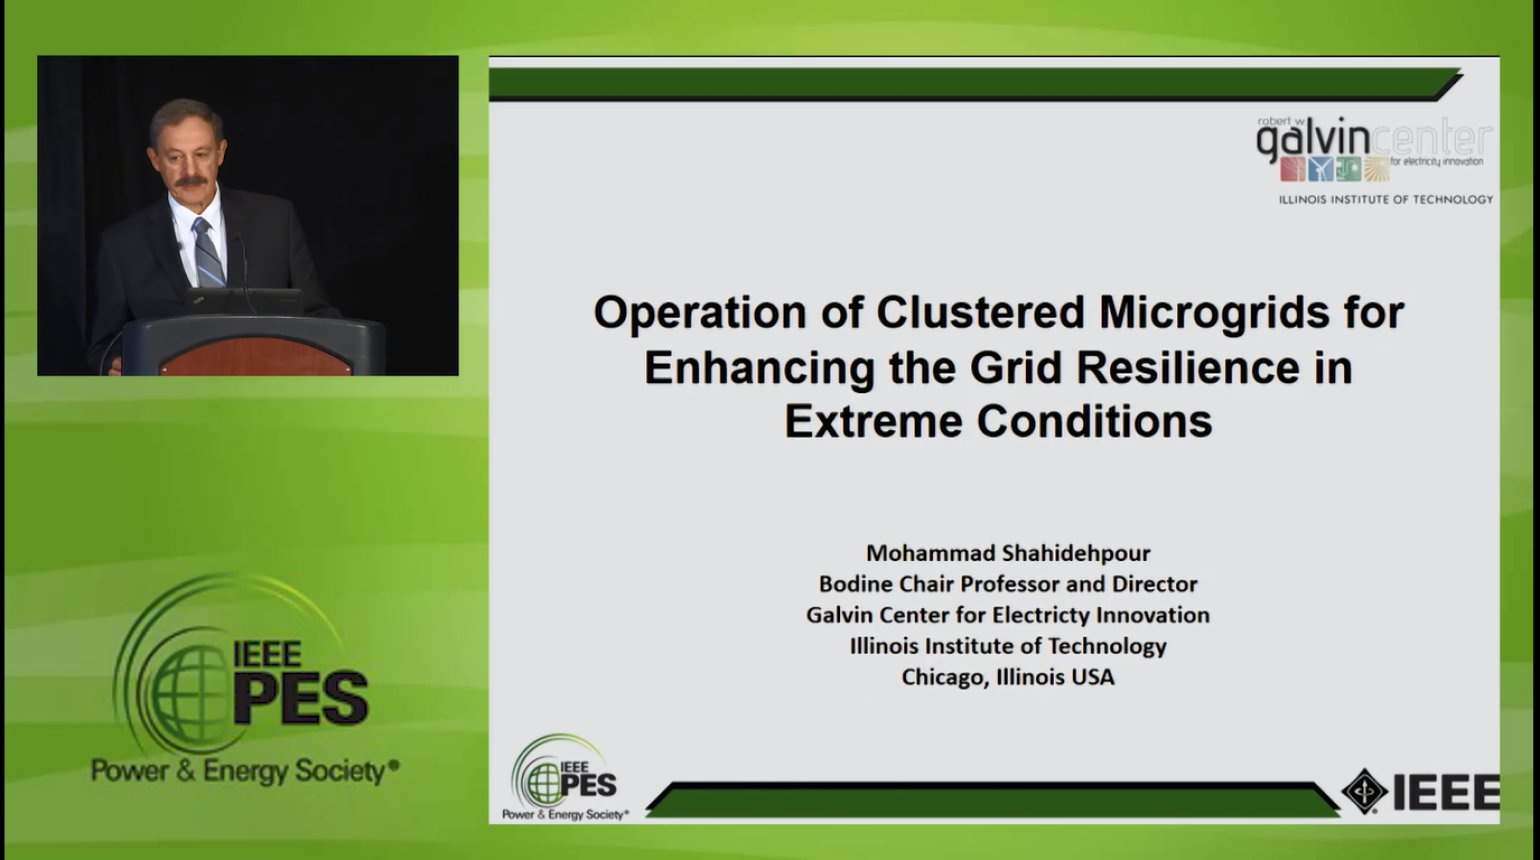 Resiliency in the Power Grid - Operation of Clustered Microgrids for Enhancing the Grid Resilience in Extreme Conditions (Video)